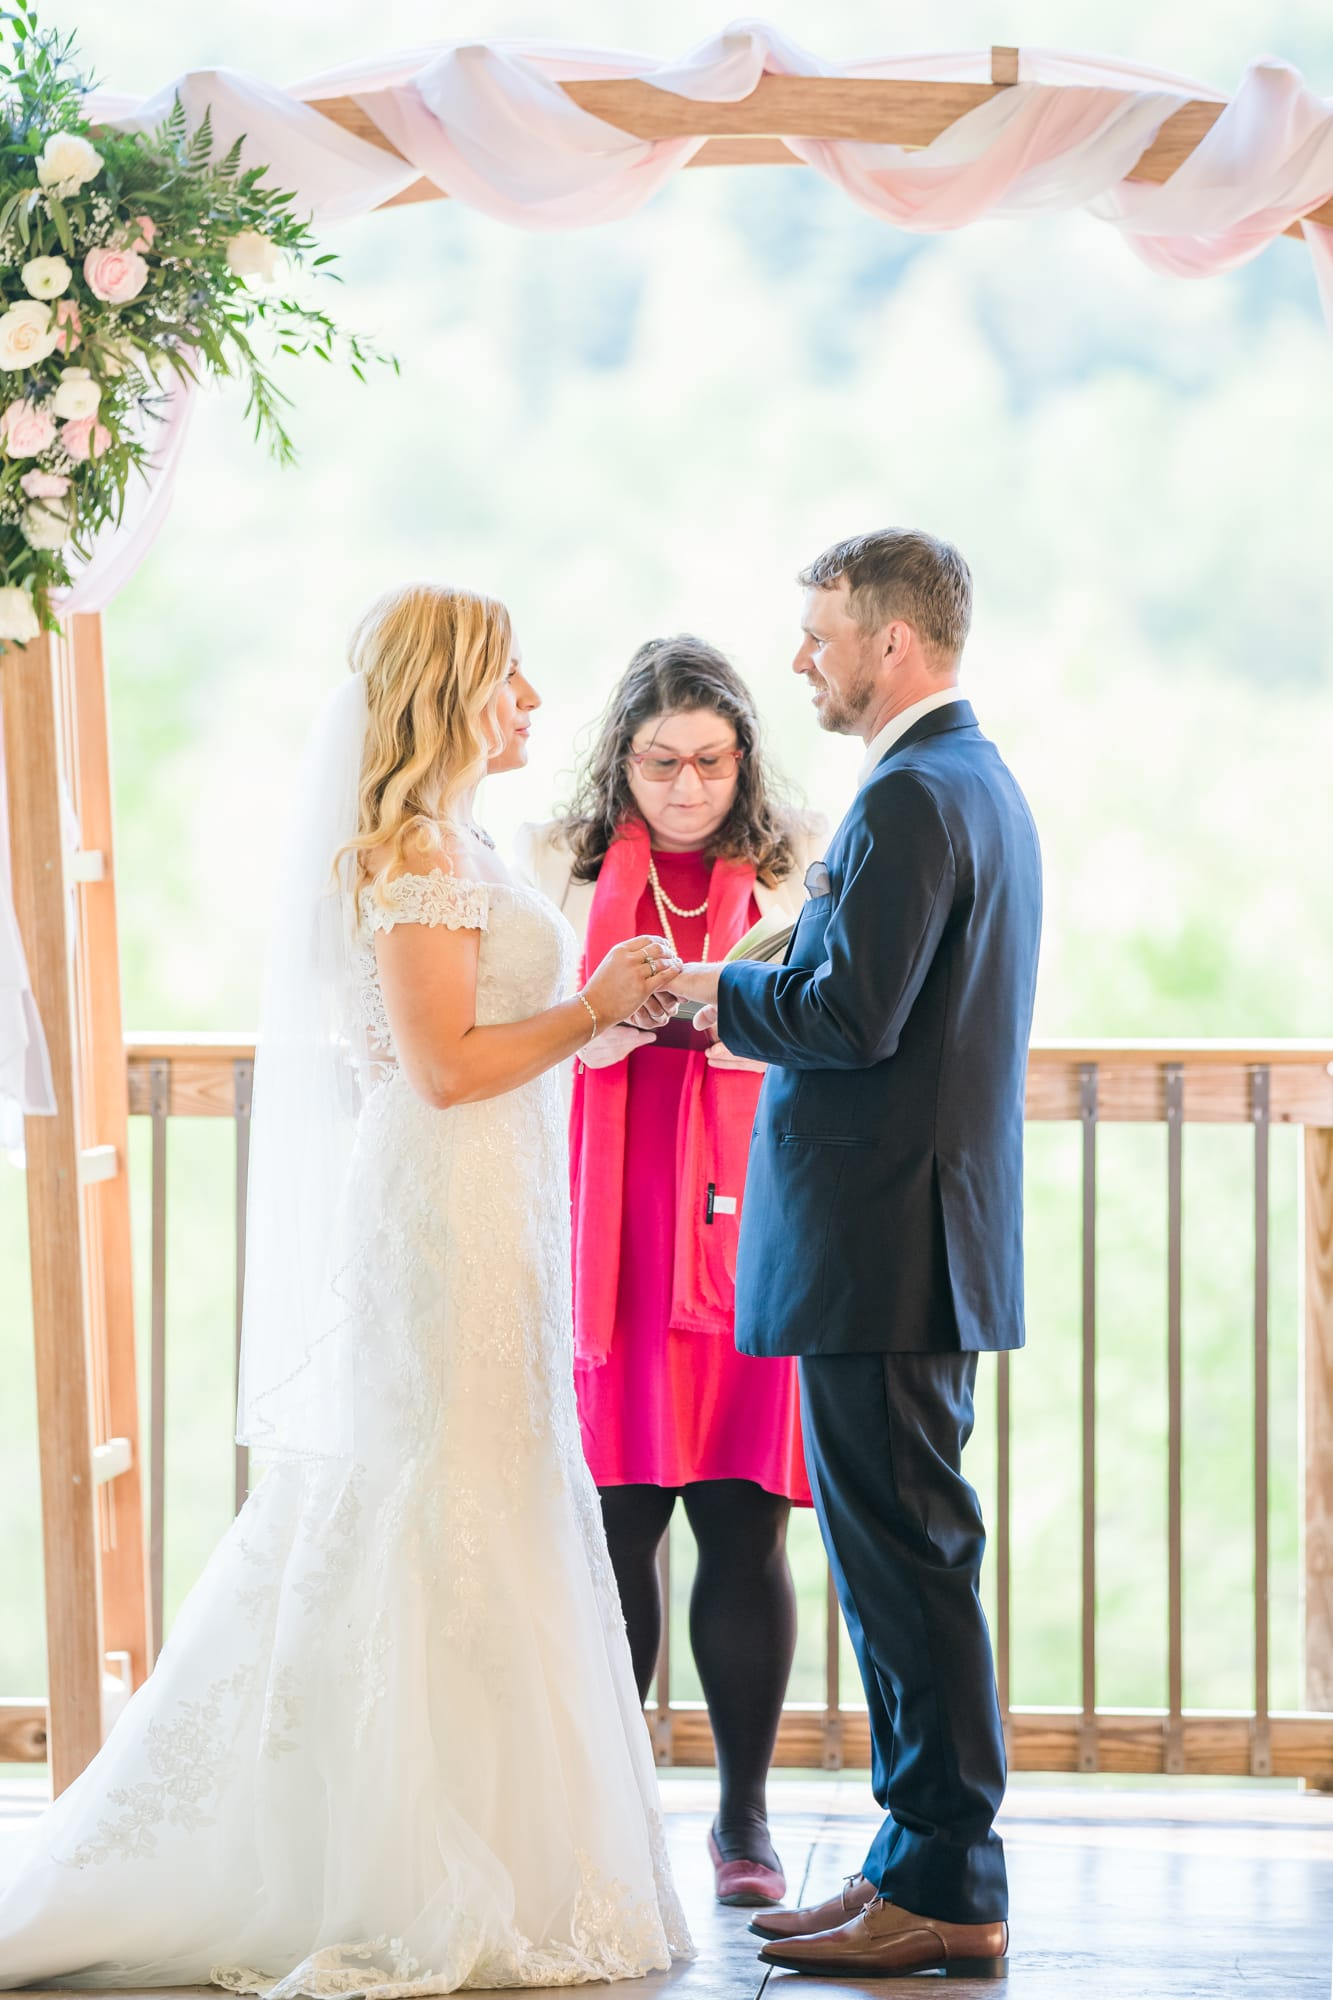 Ring exchange at Rolling Rails Lodge wedding ceremony